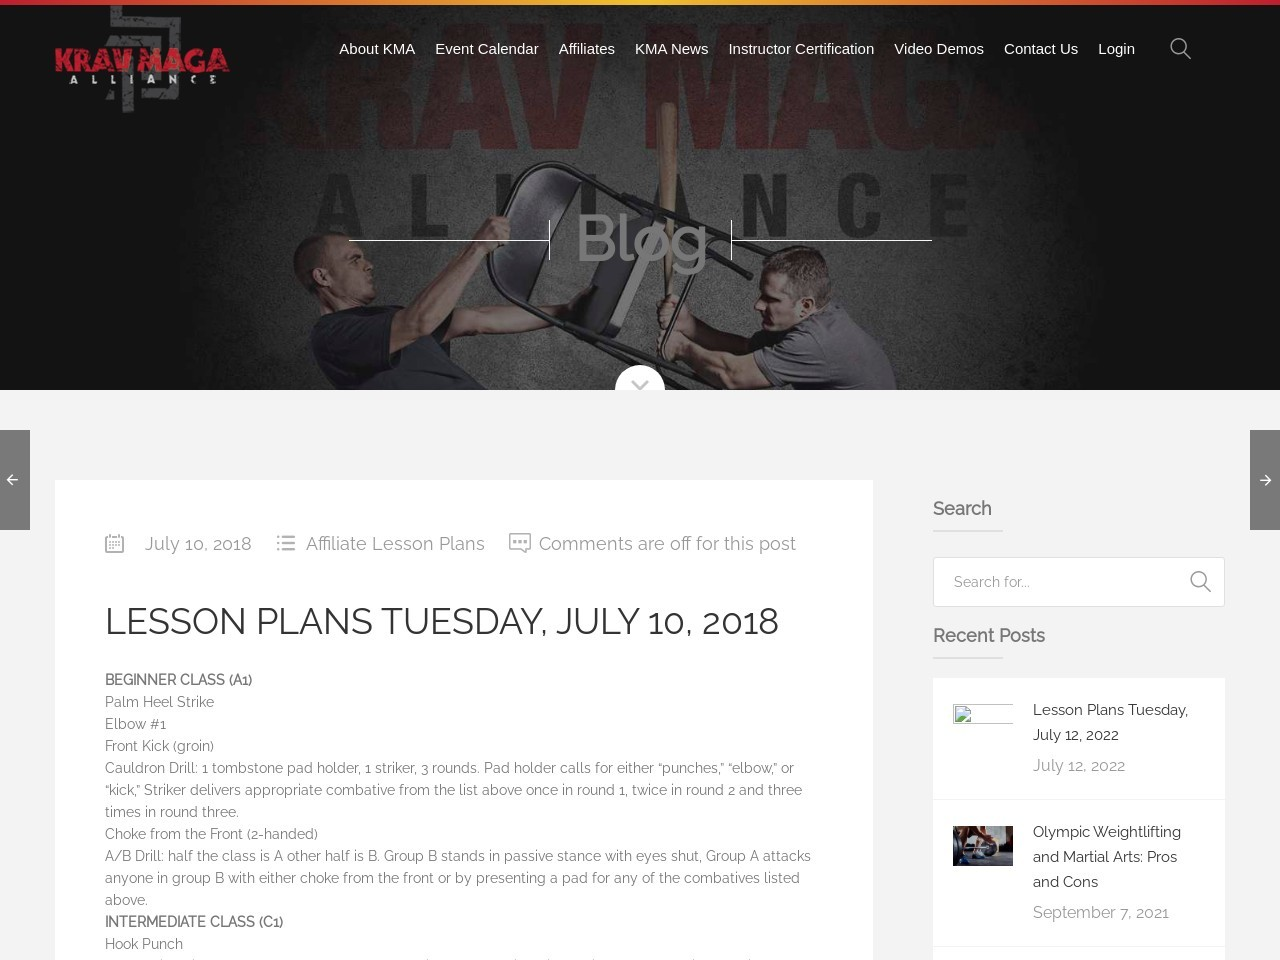 Lesson Plans Tuesday, July 10, 2018